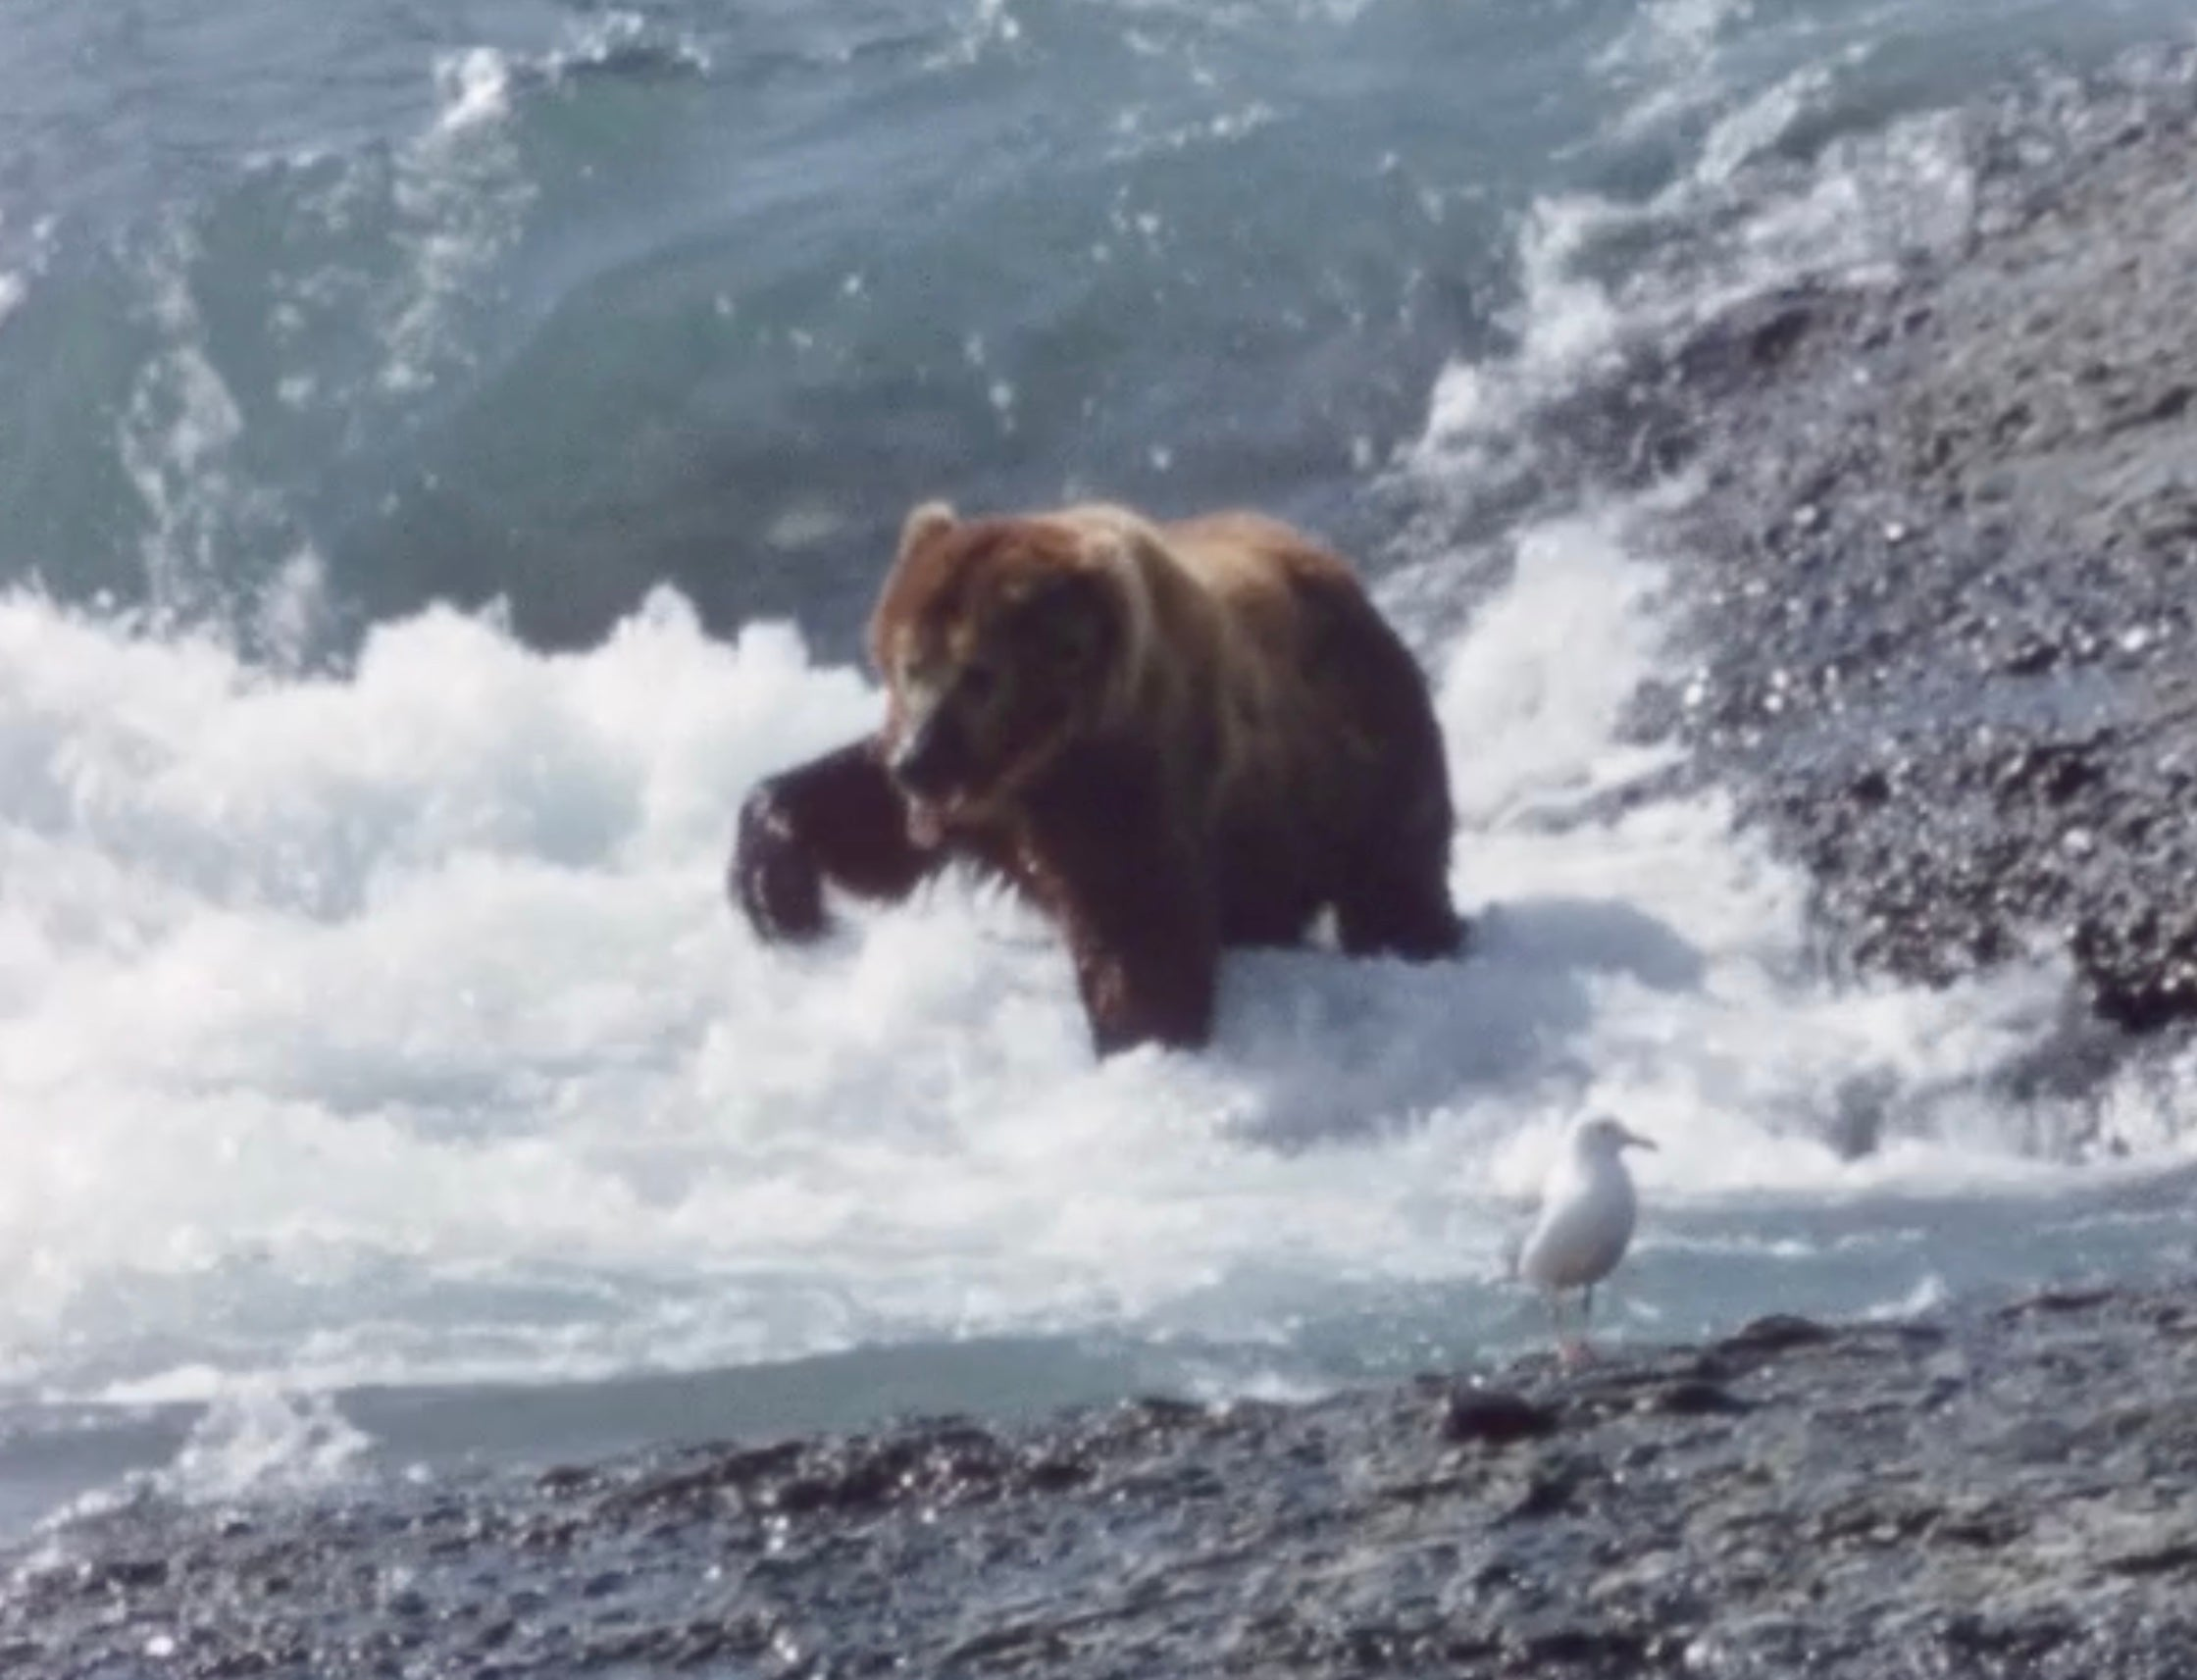 A bear fishing in a river